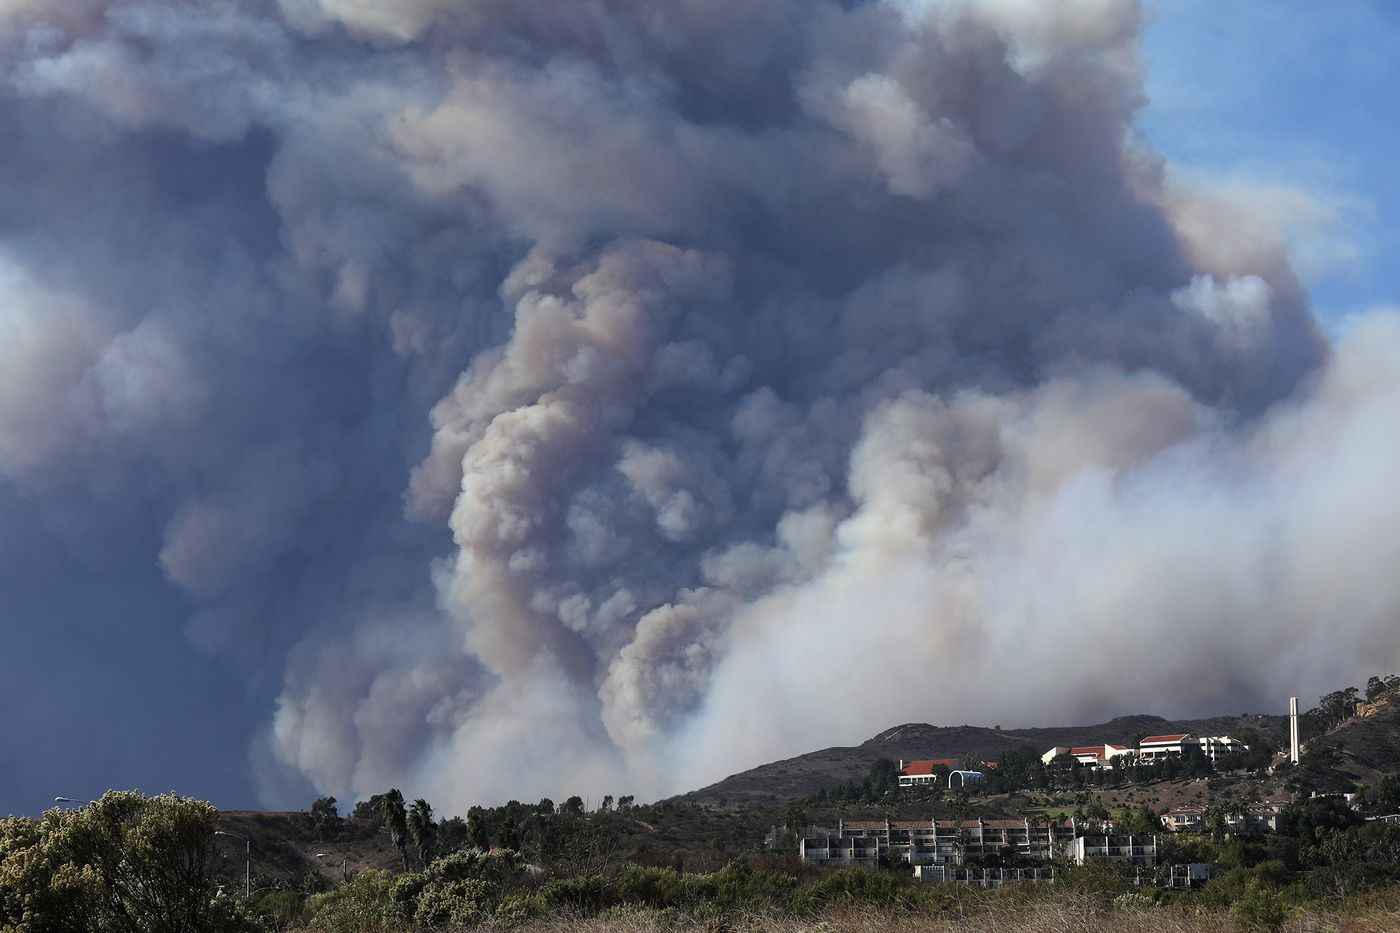 Heavy plumes of smoke float over the campus of Pepperdine University in Malibu as the Woolsey Fire burns through the area in November 2018. (Credit: Genaro Molina/Los Angeles Times)